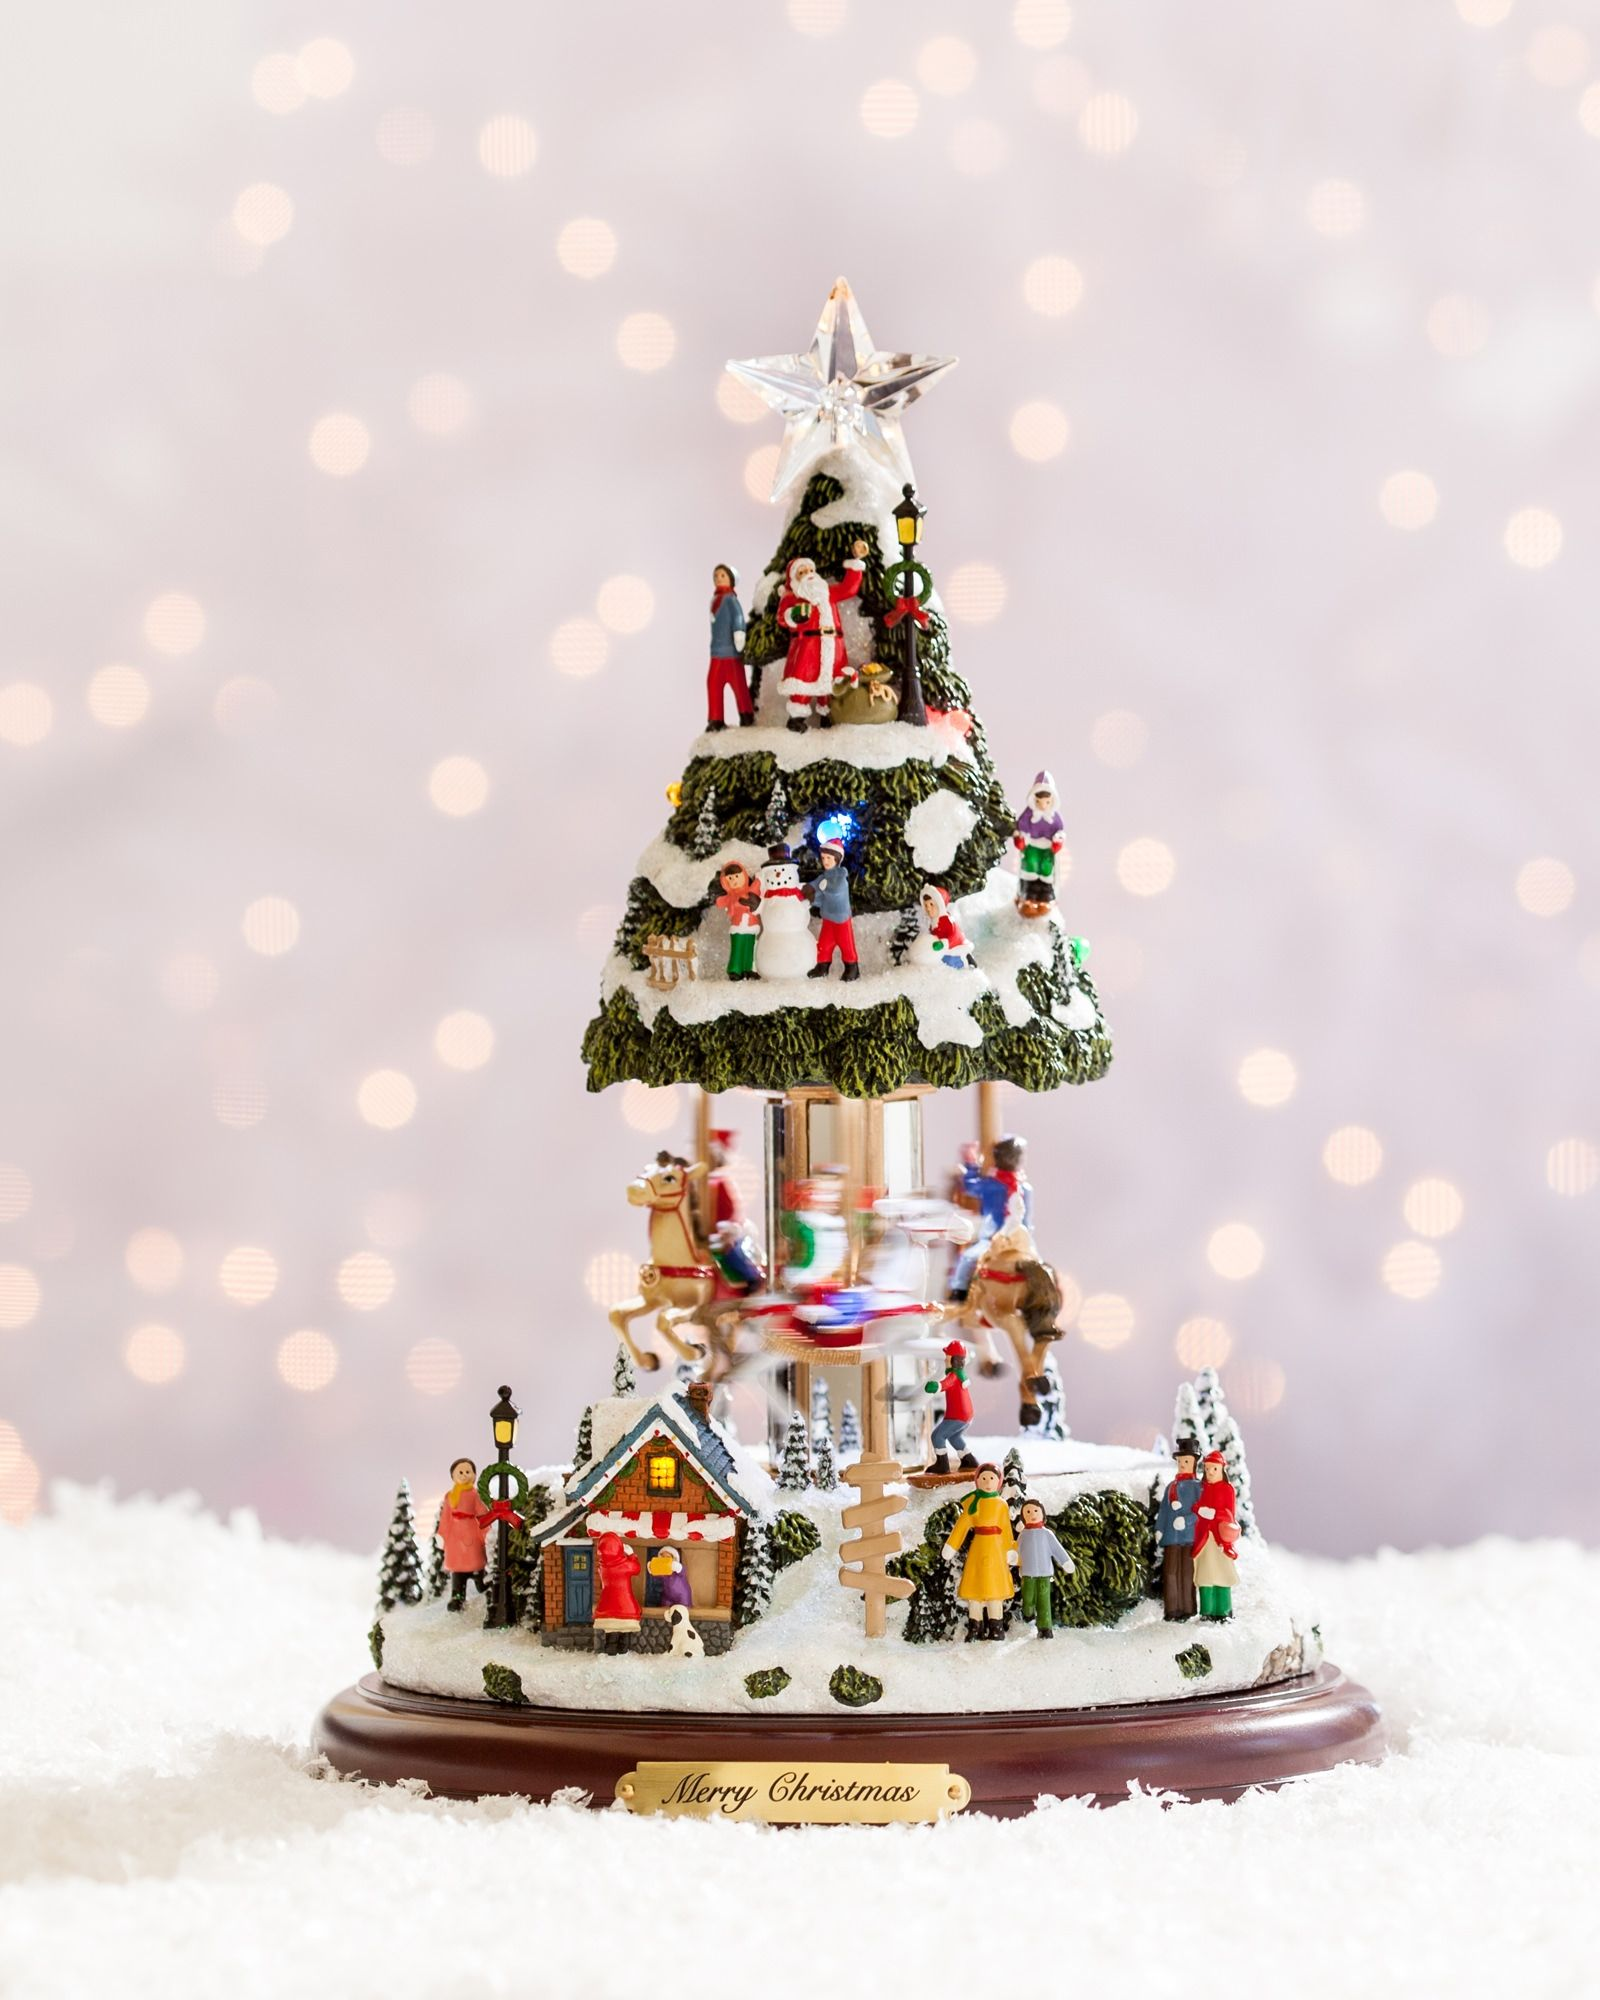 Our Animated Musical Tree is a miniature Christmas village ...